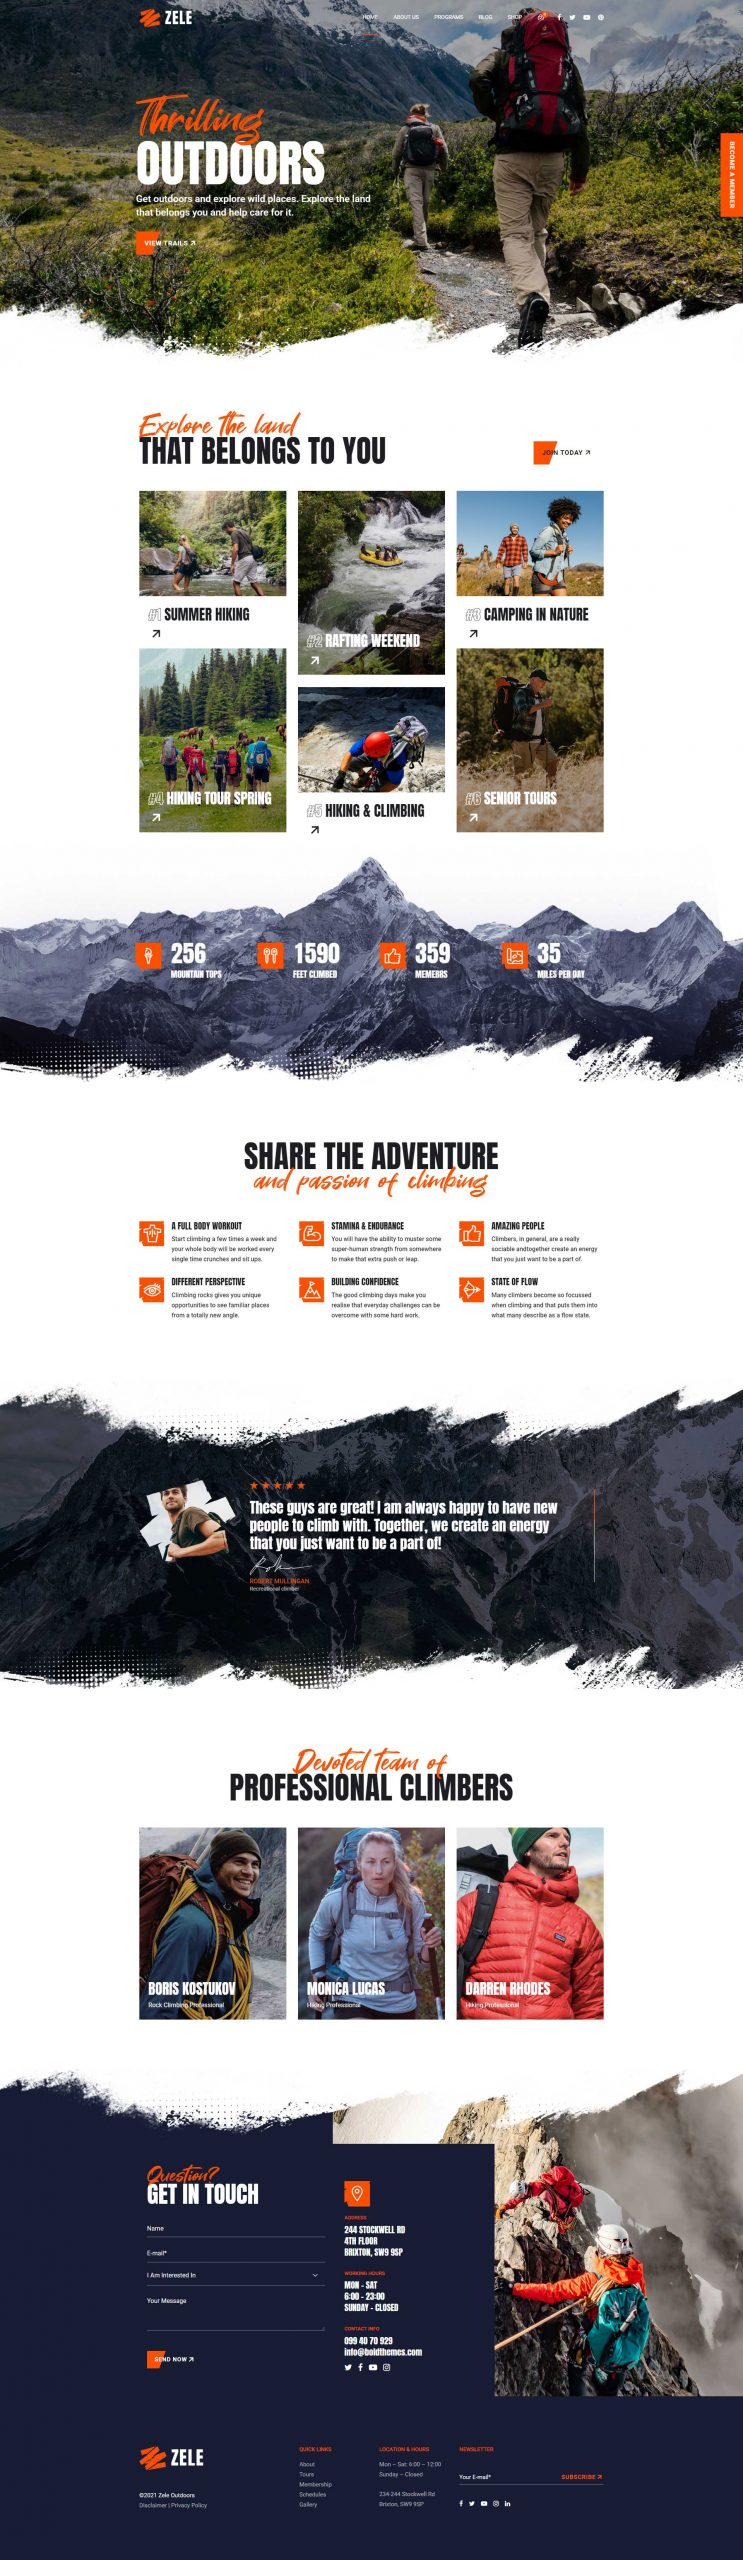 http://zele.bold-themes.com/wp-content/uploads/2021/07/Rough-Home-01-scaled-1.jpg